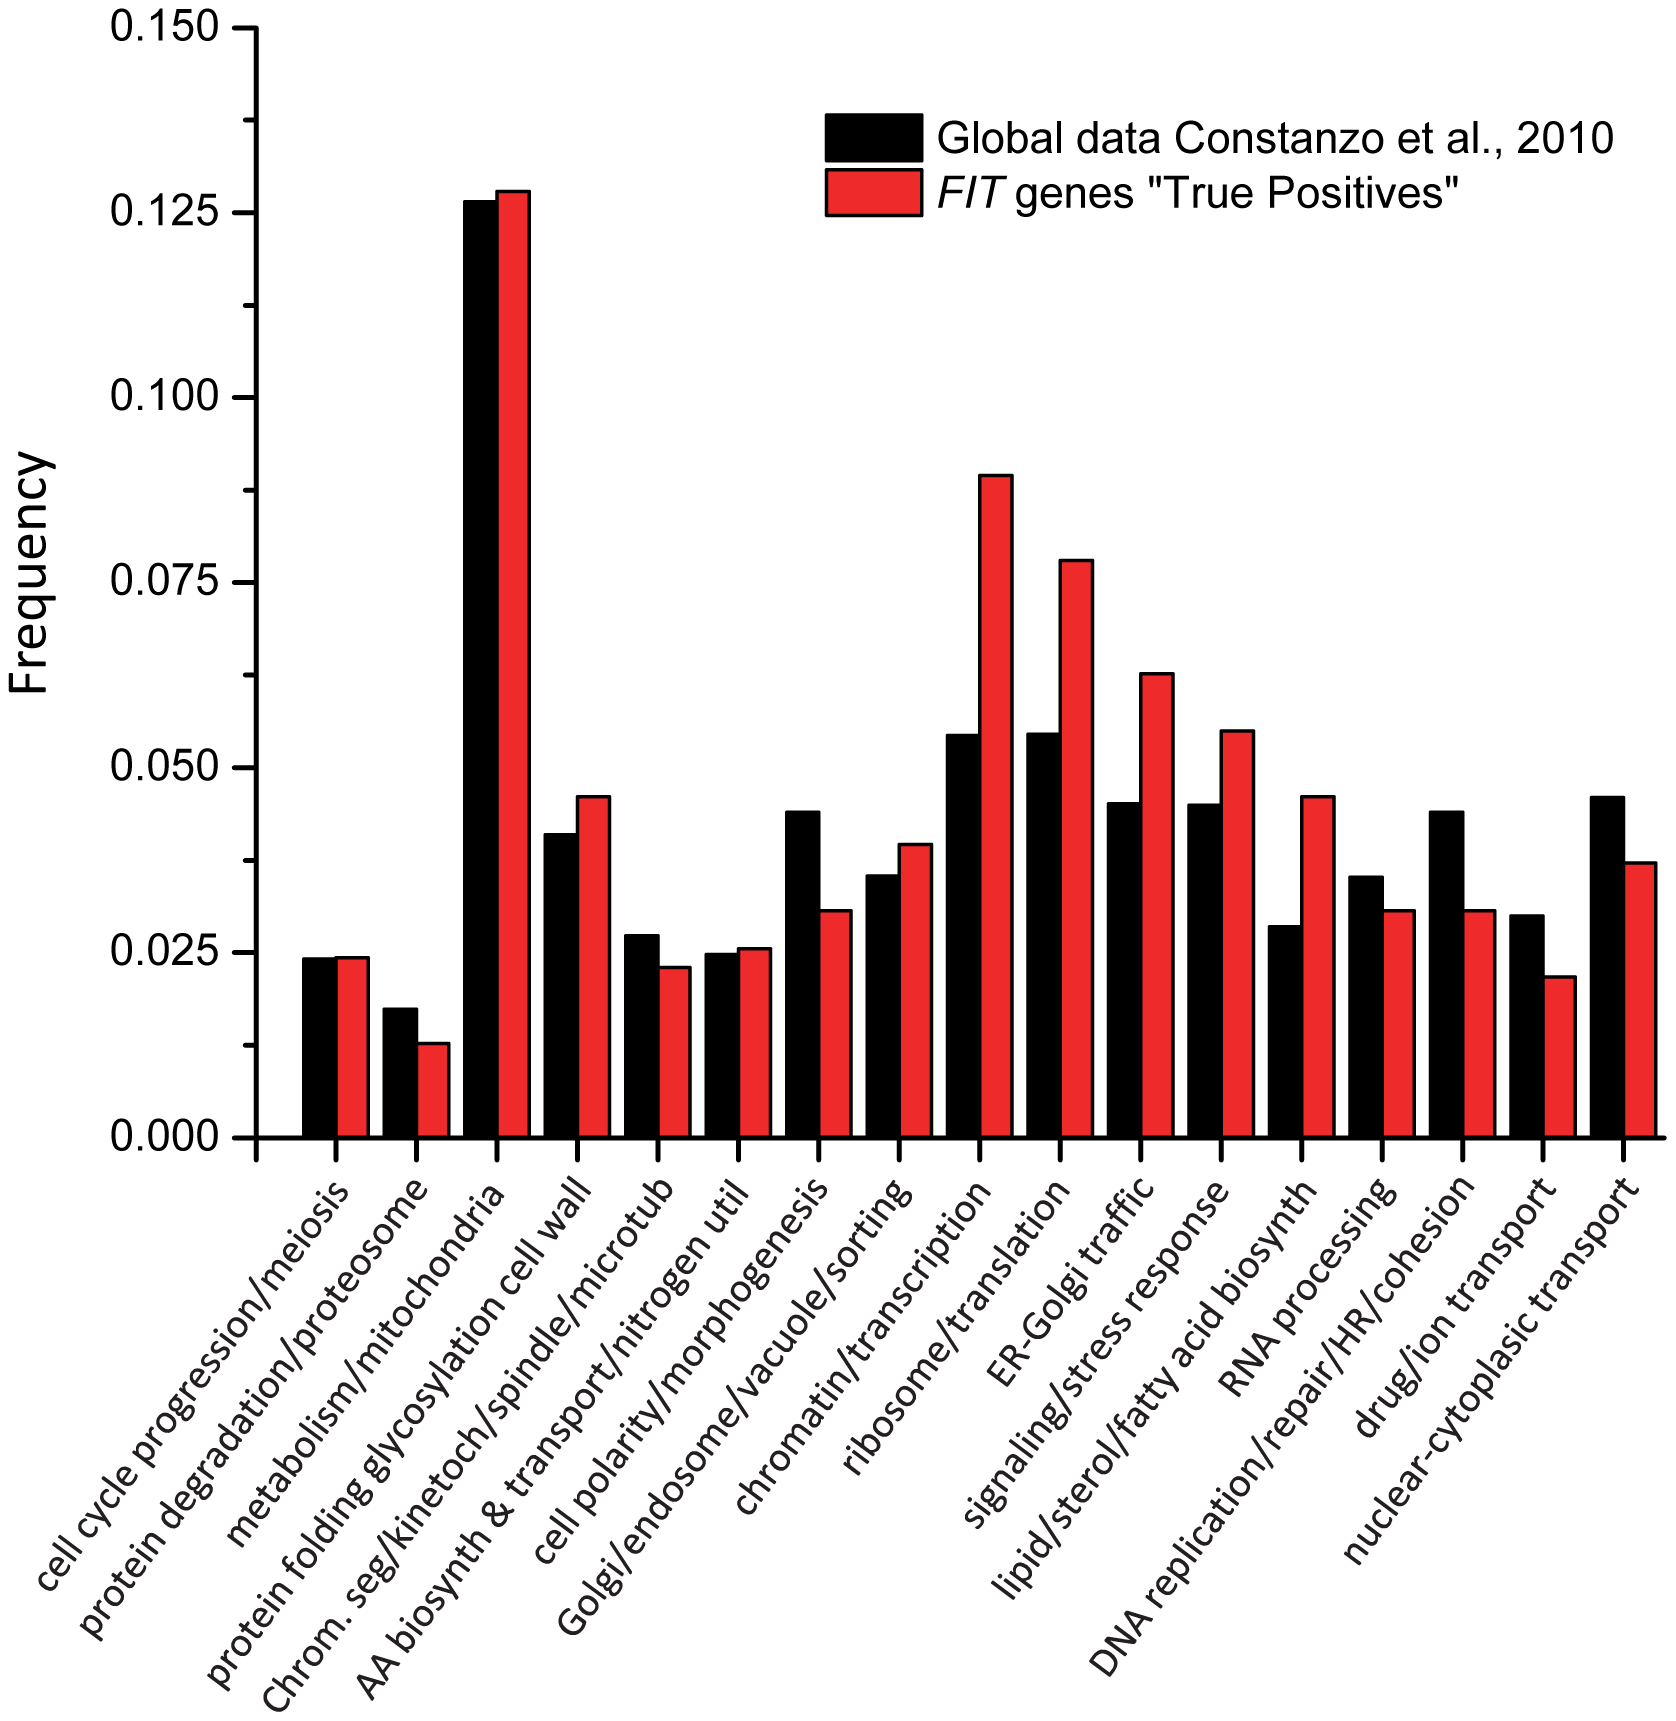 Enrichment of GO bioprocess terms among genes that have genetic interactions with <i>SCS3</i> and/or <i>YFT2</i>.